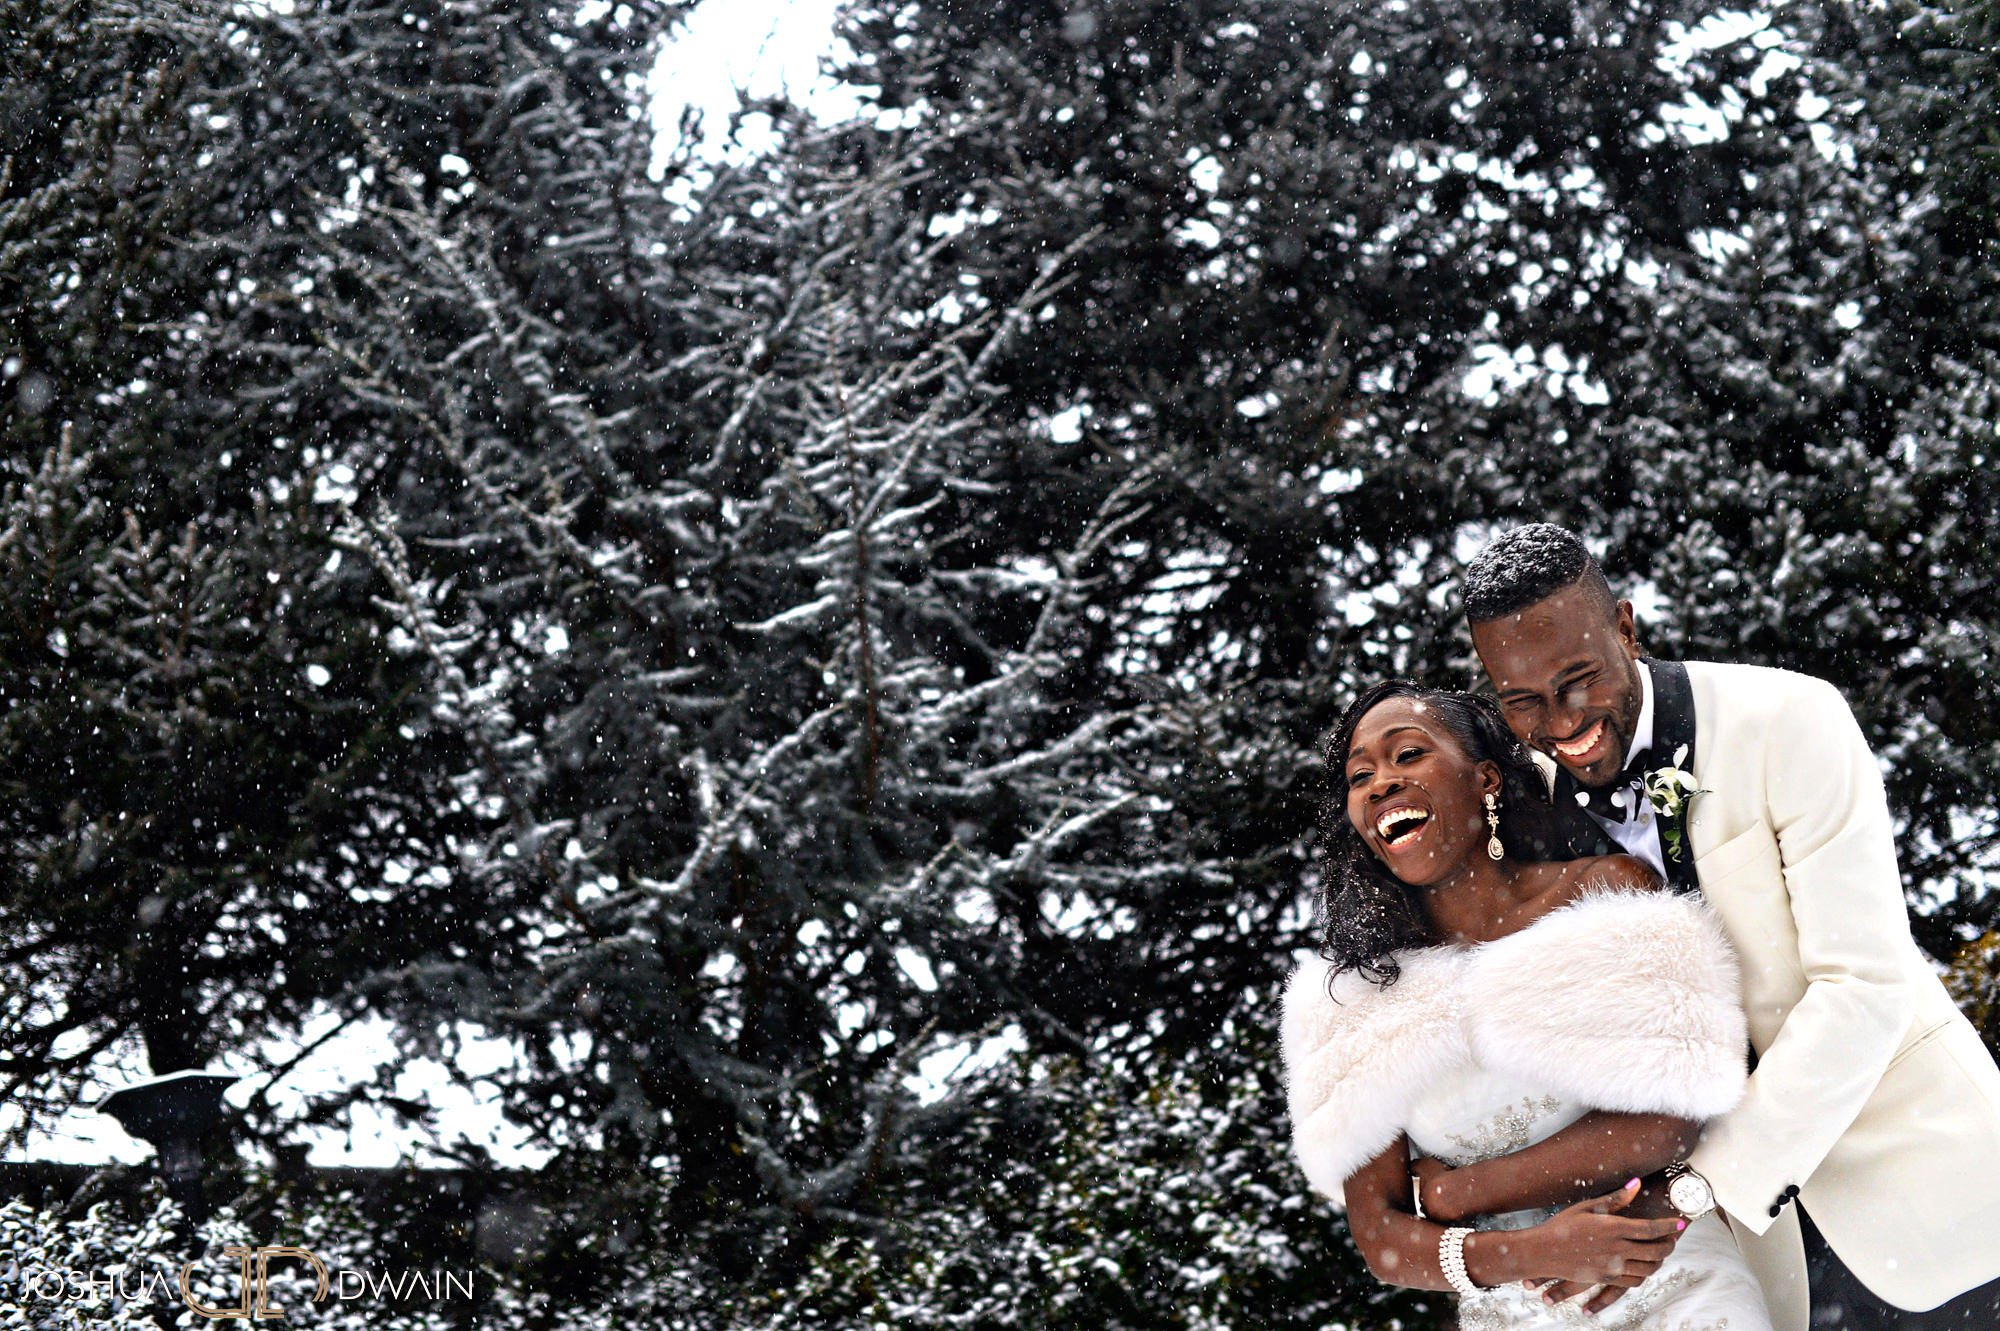 Remonia & Jermaine's wedding at the One & Only Westmount Country Club in Woodland Park, NJ